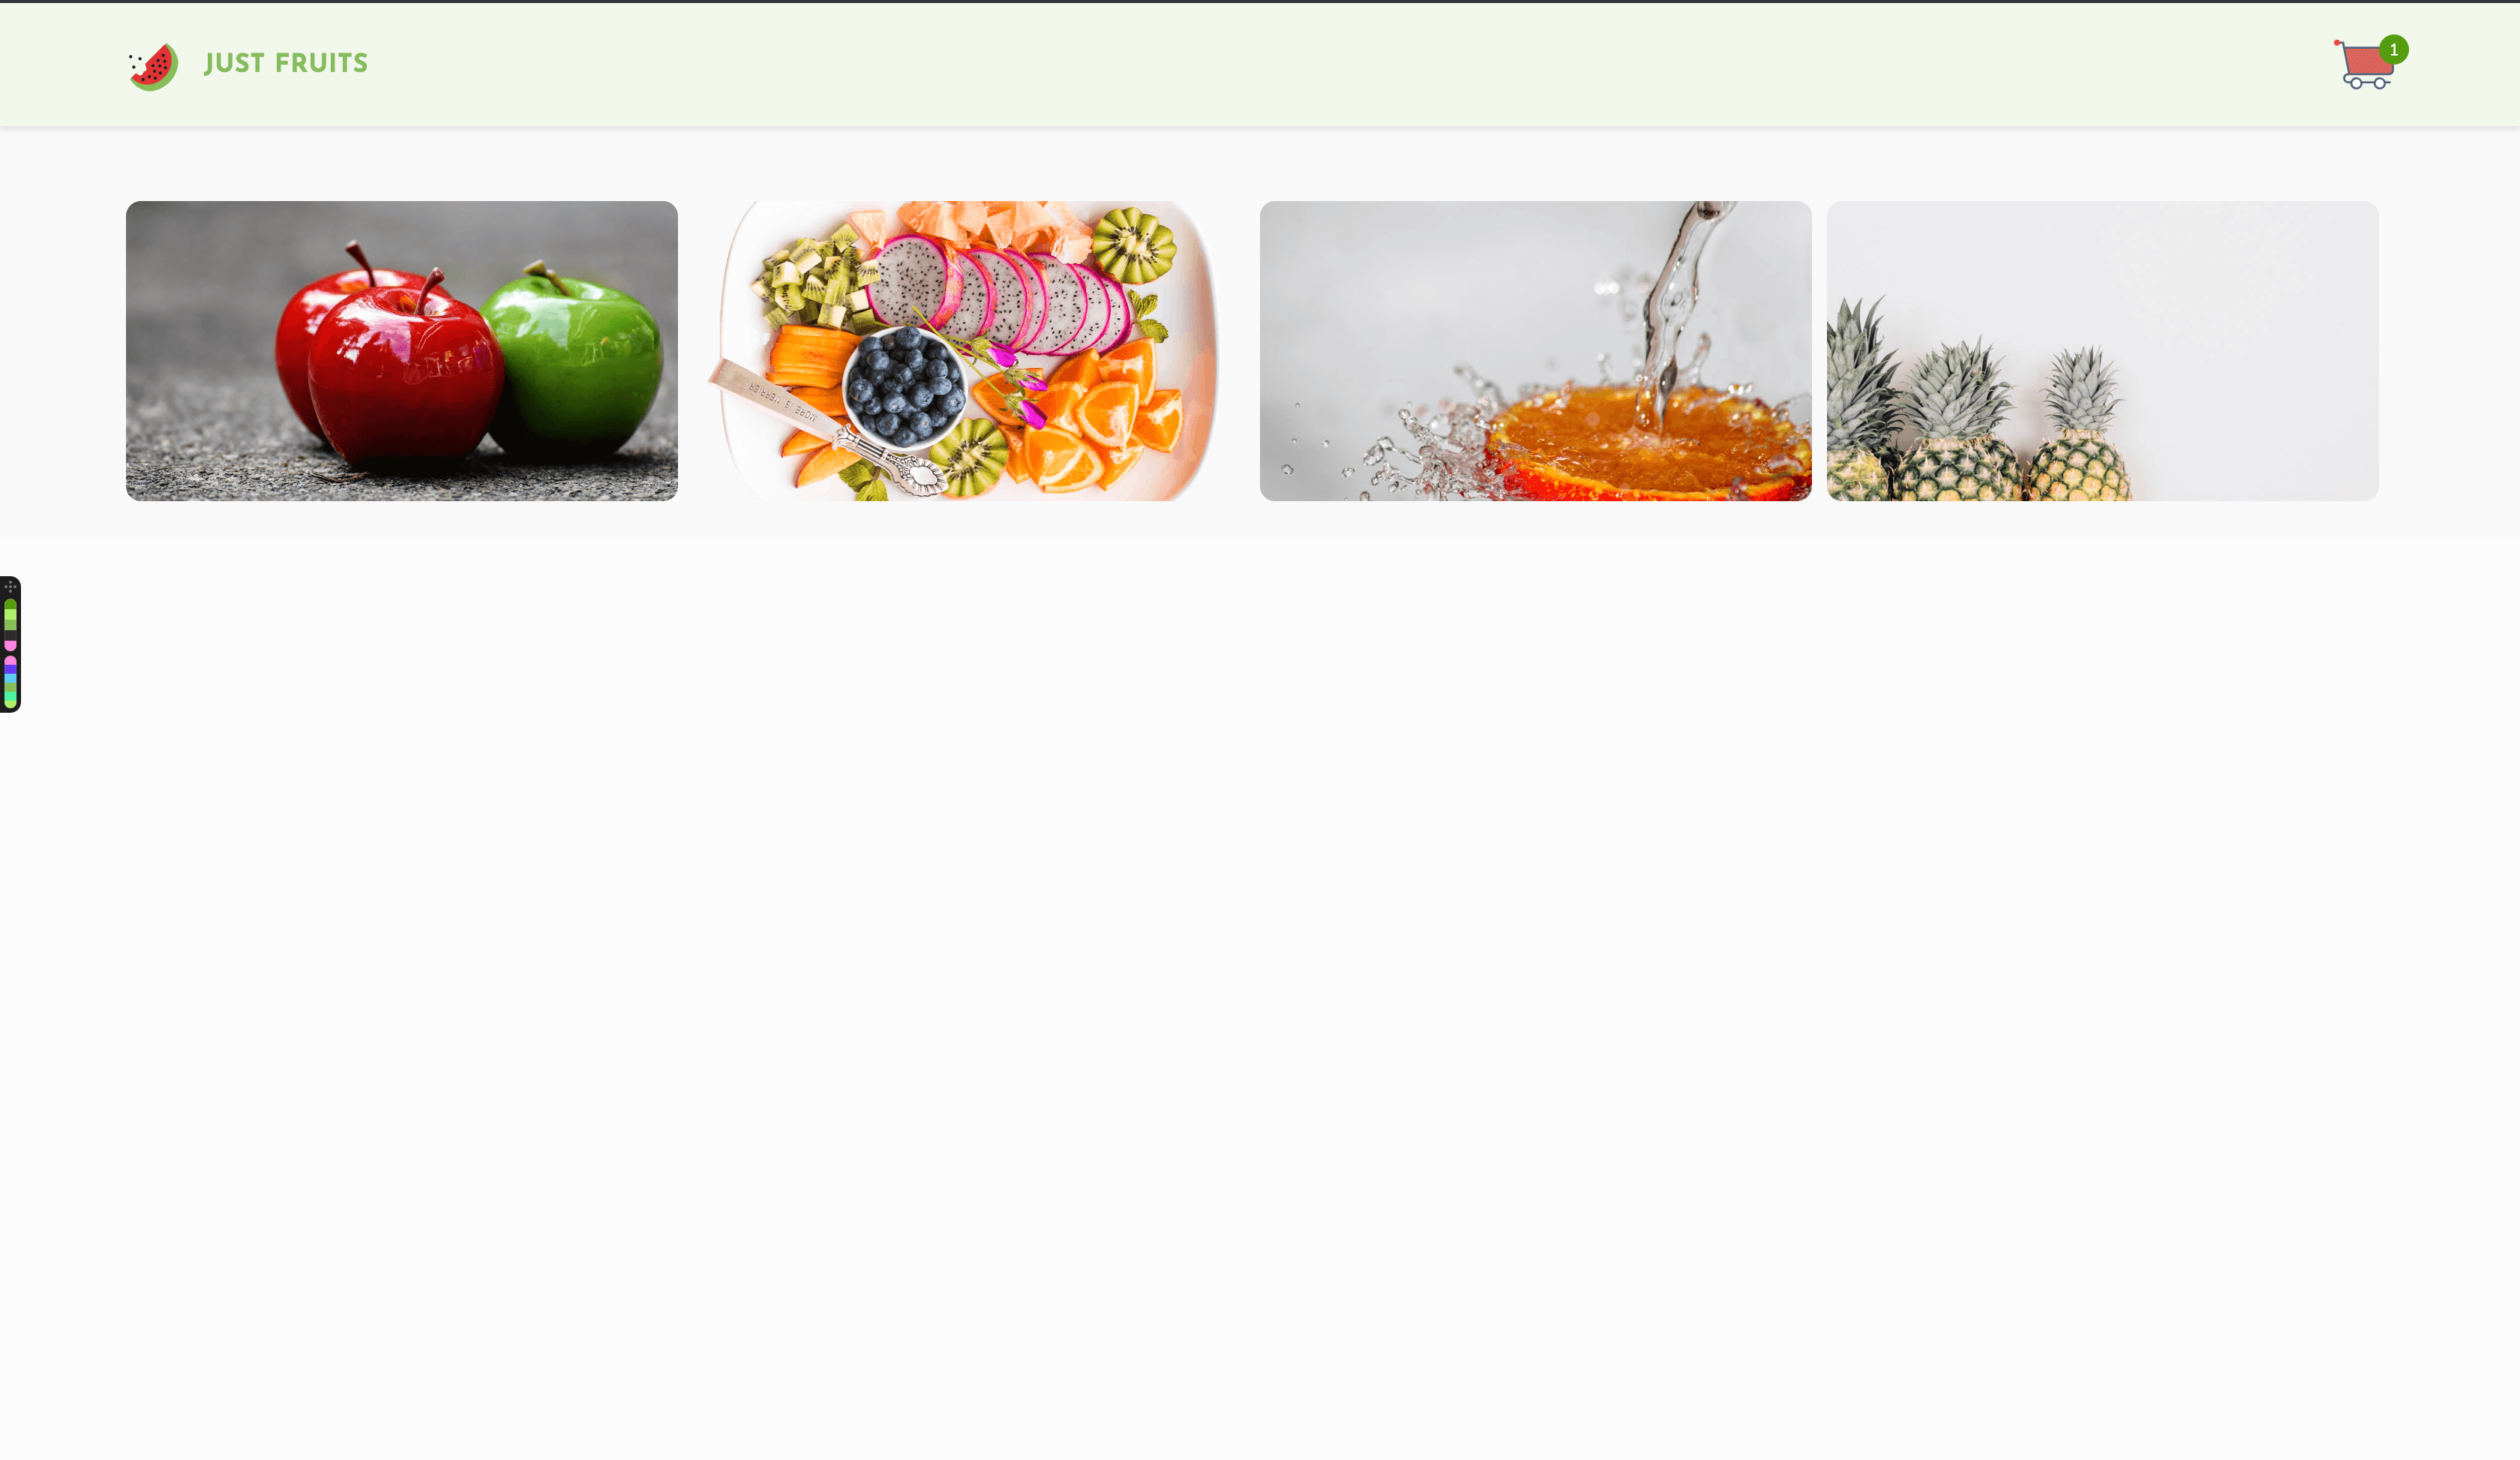 header with Just fruits logo and a cart, and below are photos of fruit